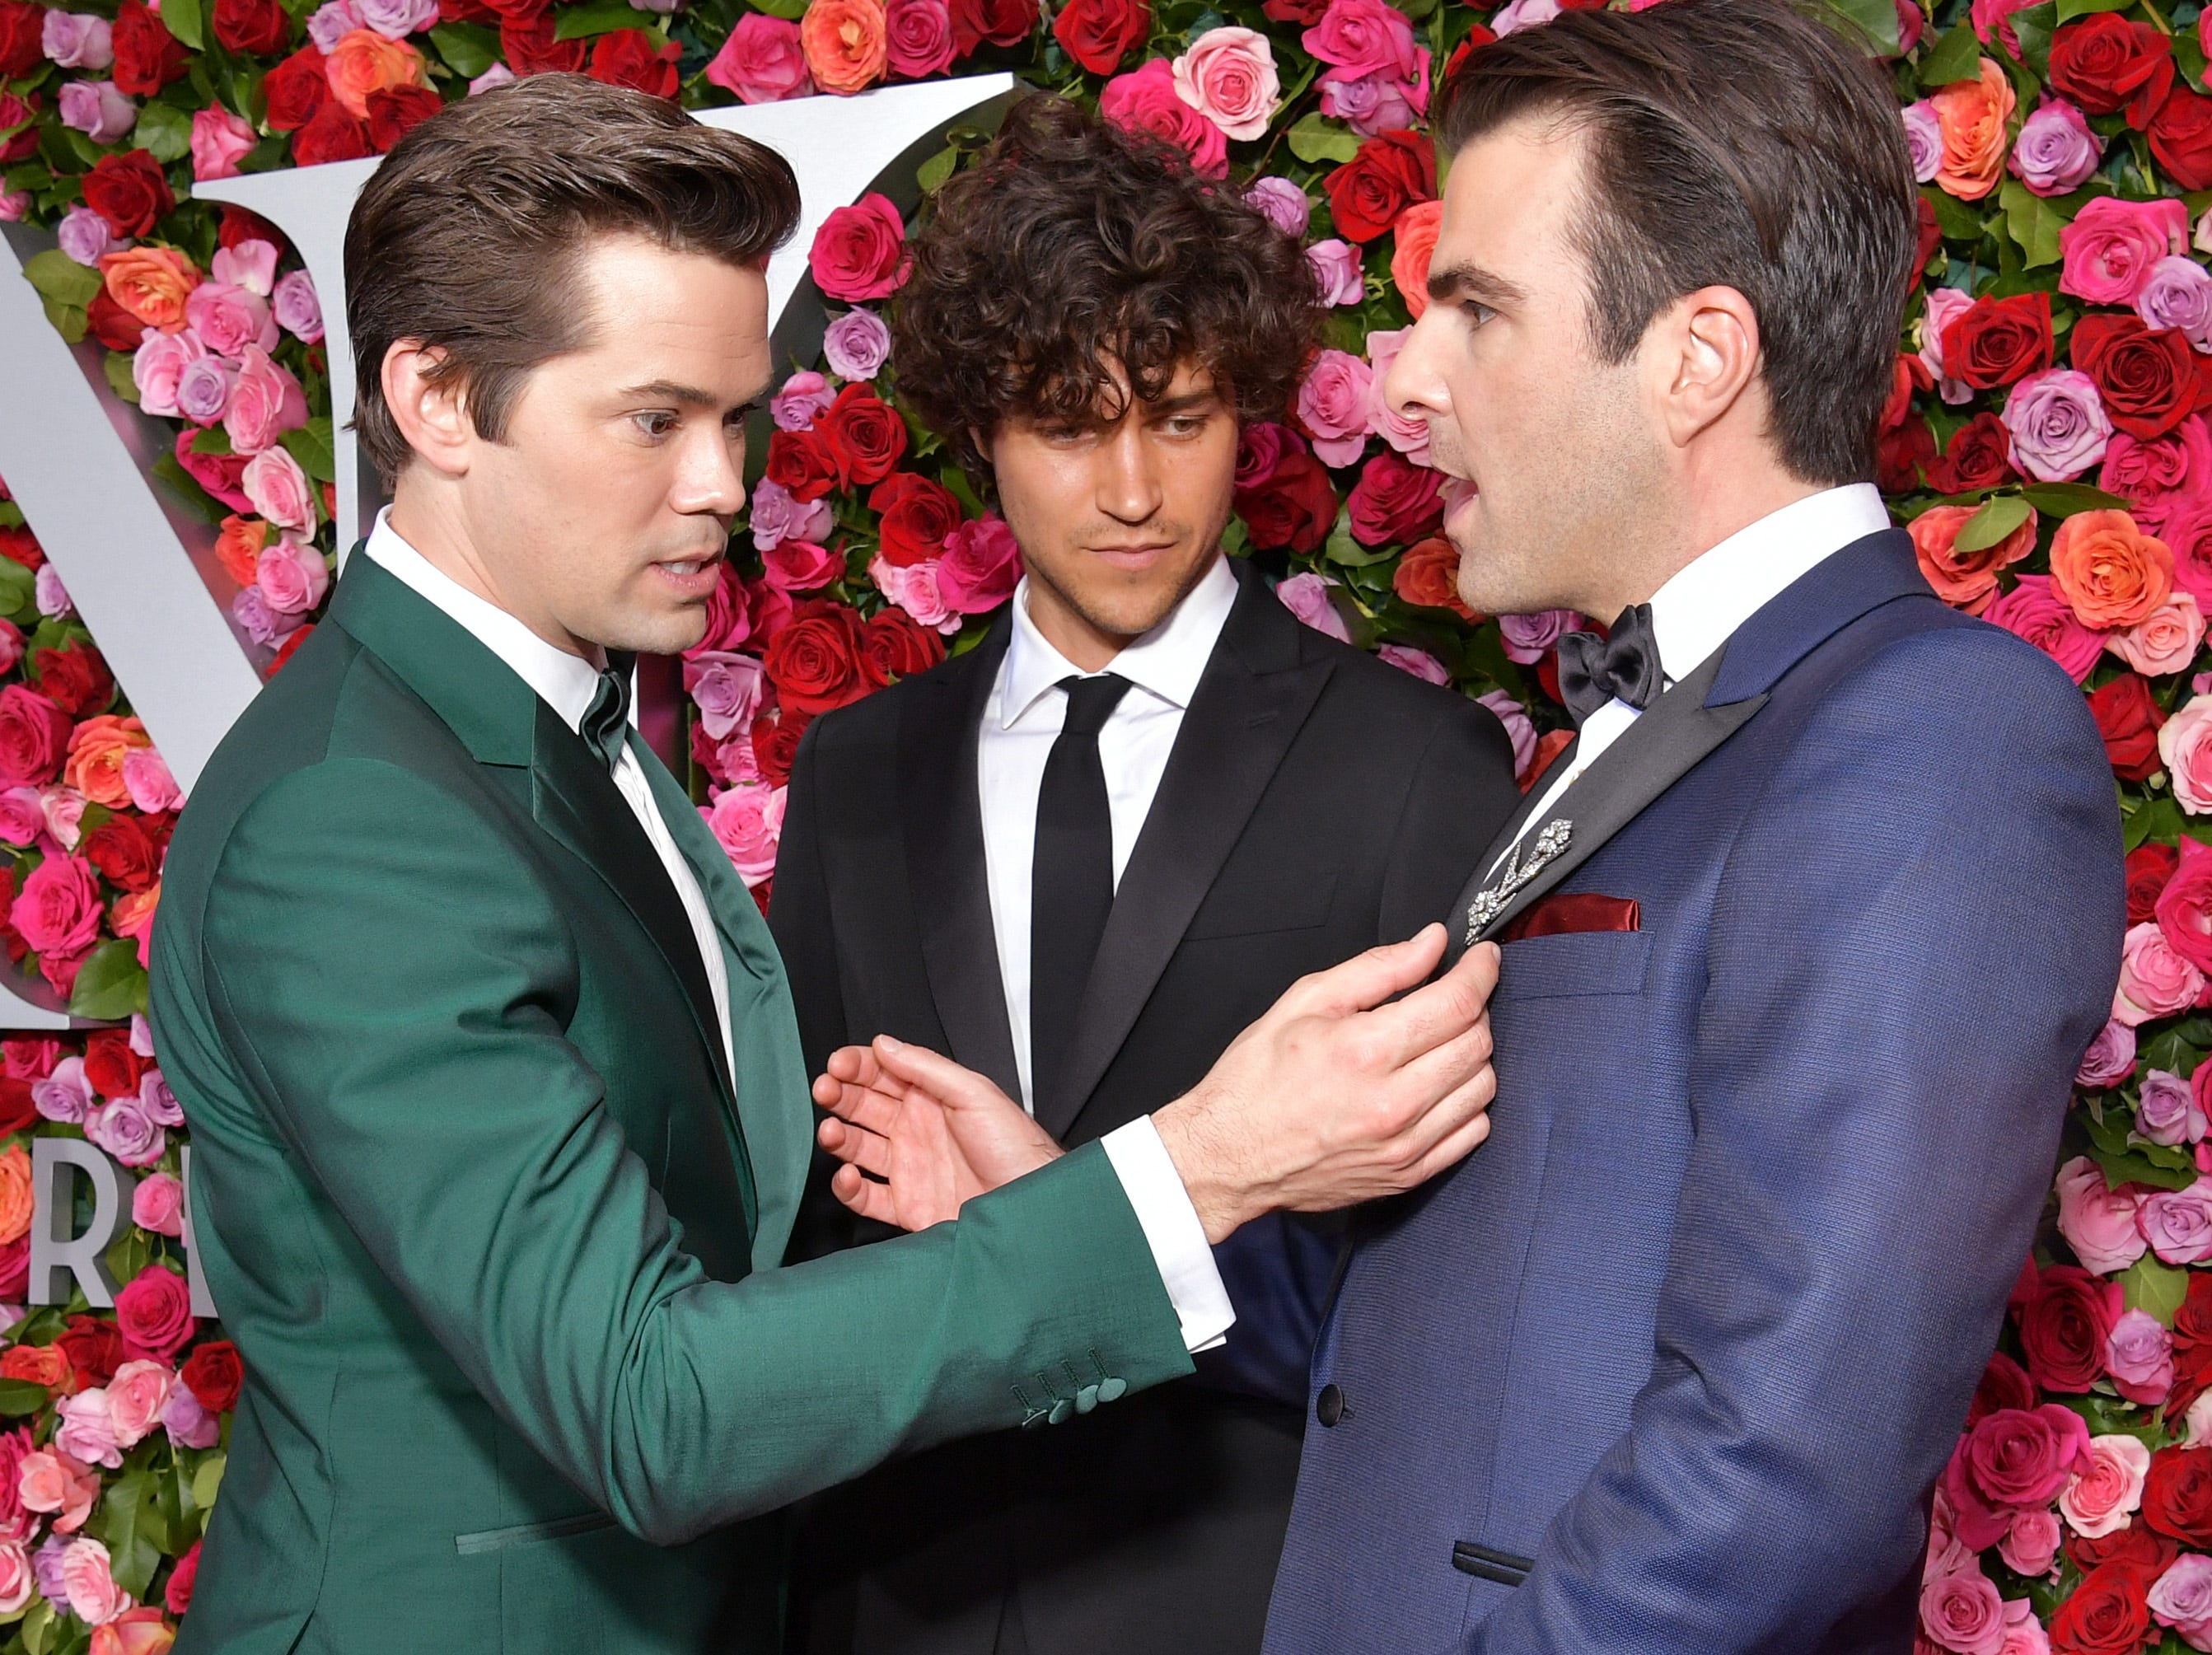 June 10: Andrew Rannells, Miles McMillan and Zachary Quinto check out each others' outfits at the Tony Awards in New York City.